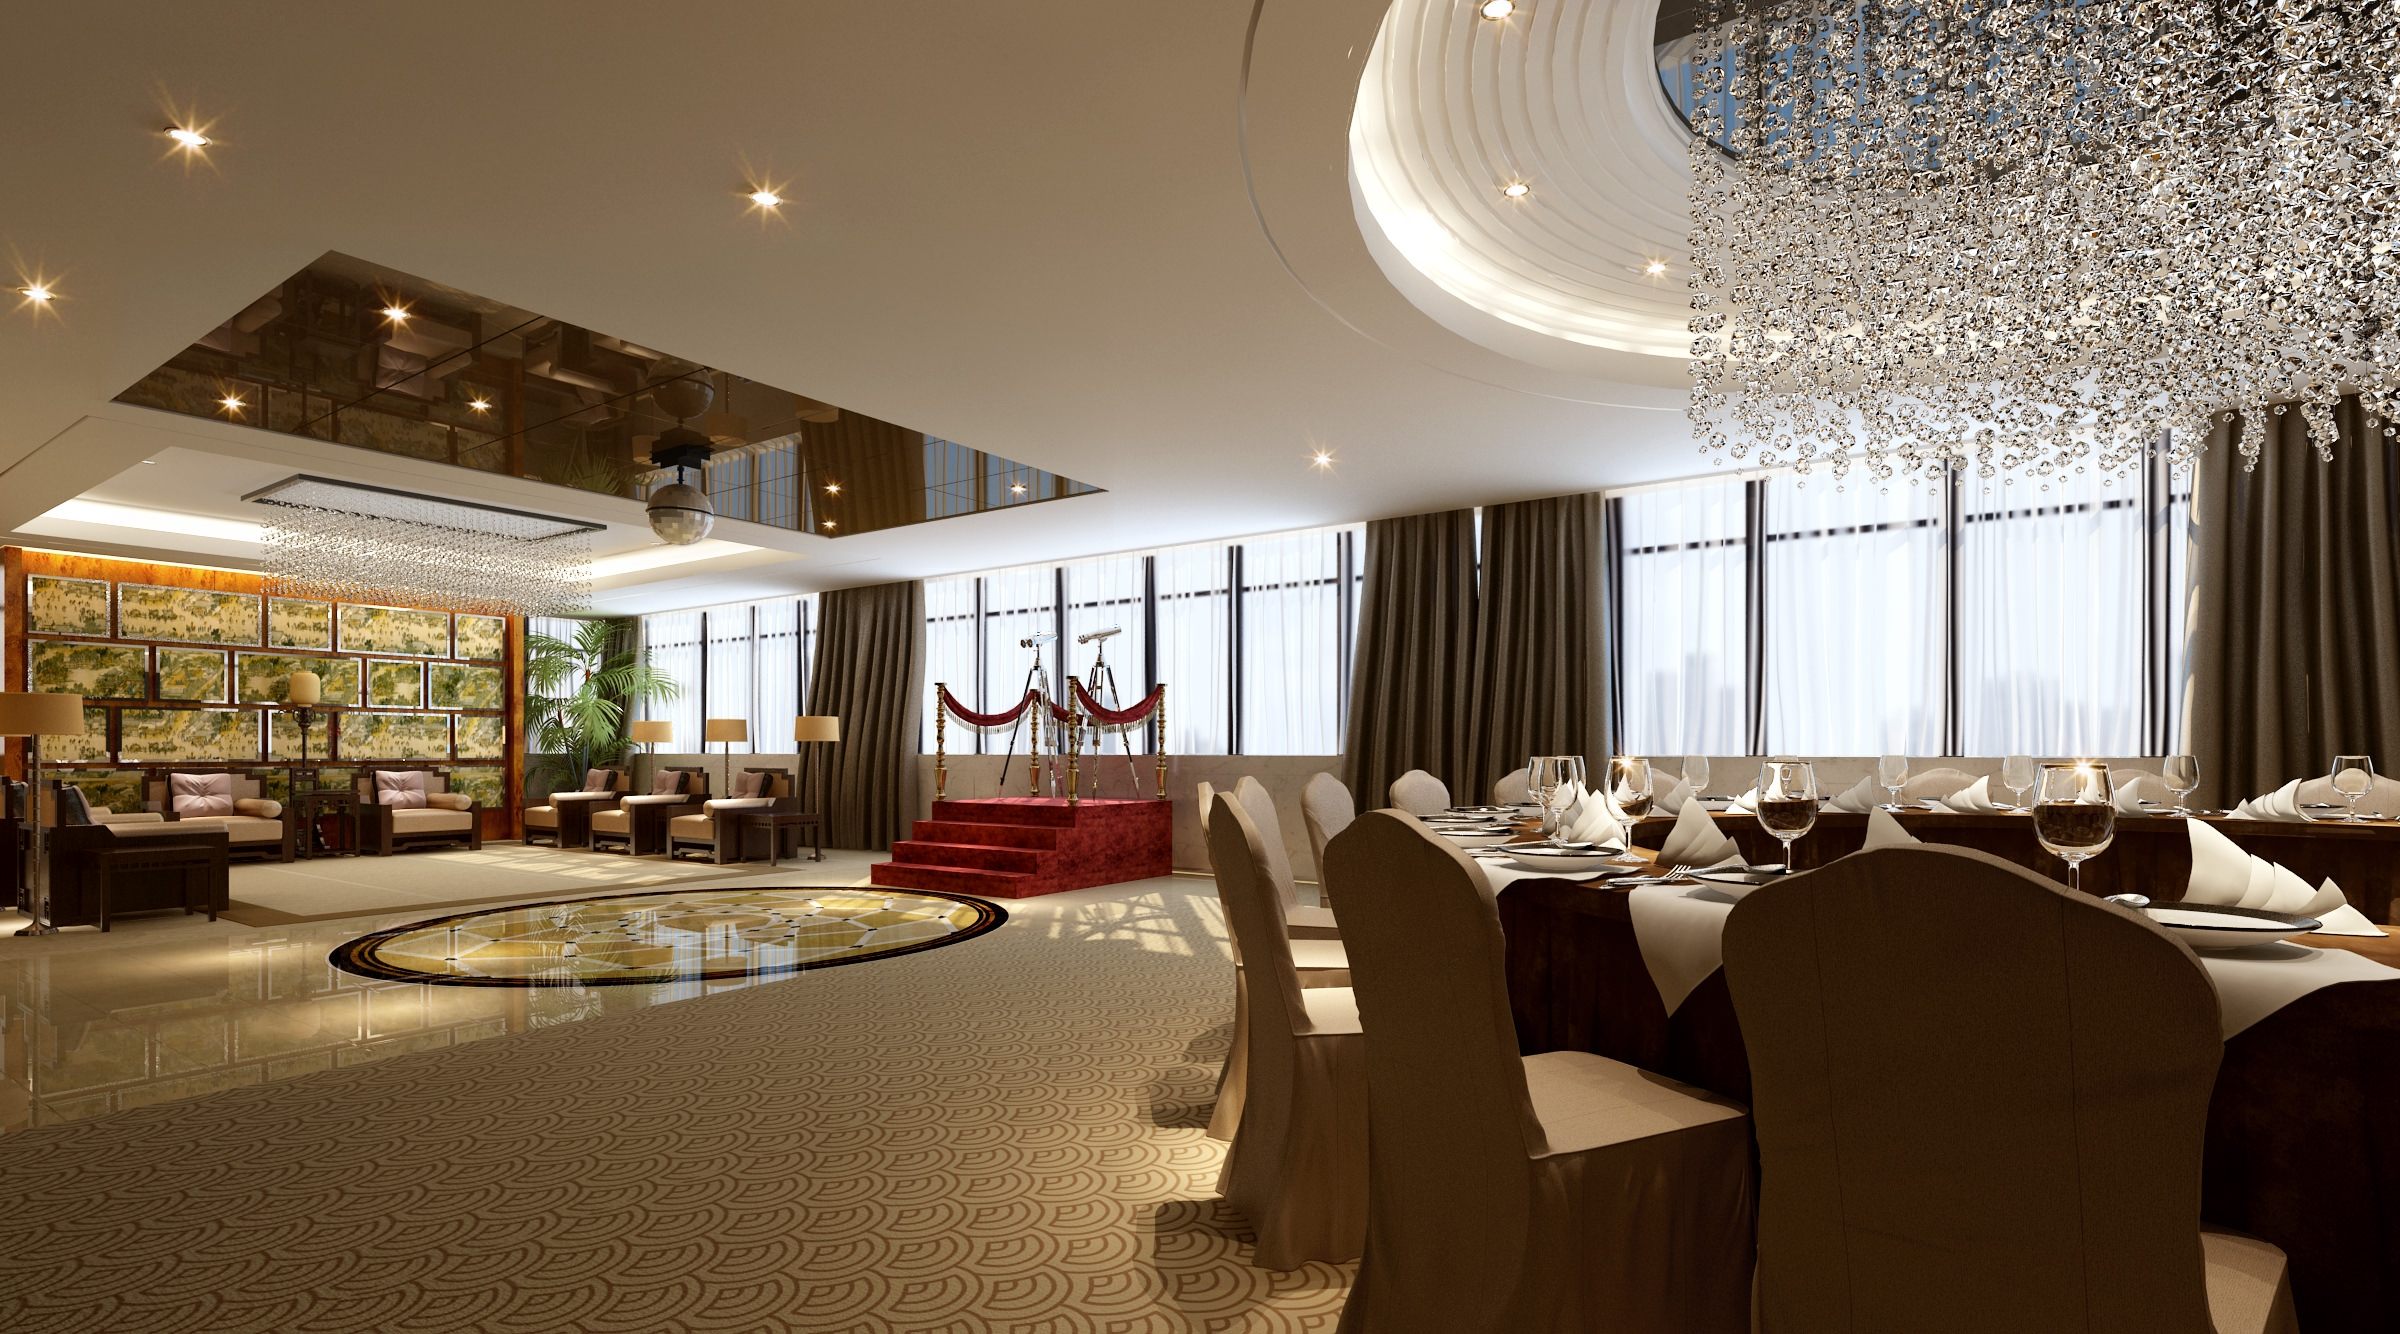 High End Restaurant With Classy Chandeliers 3d Model Max With Regard To Restaurant Chandeliers (View 7 of 15)